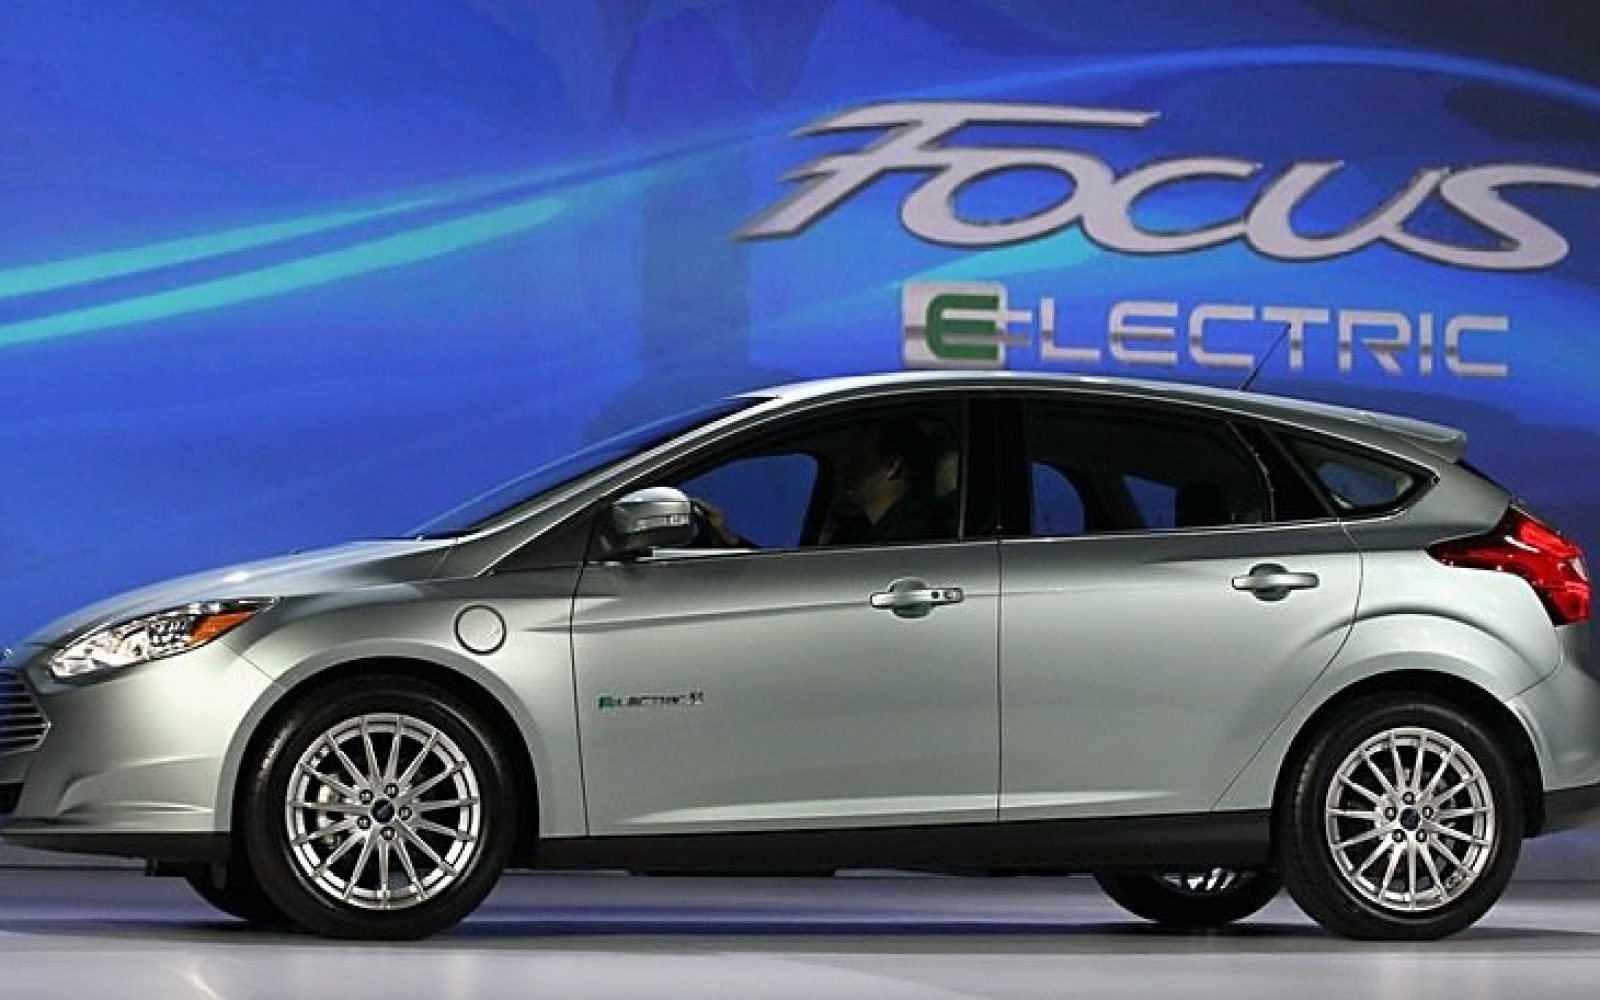 Ford follows teslas lead and opens all their electric vehicle patents